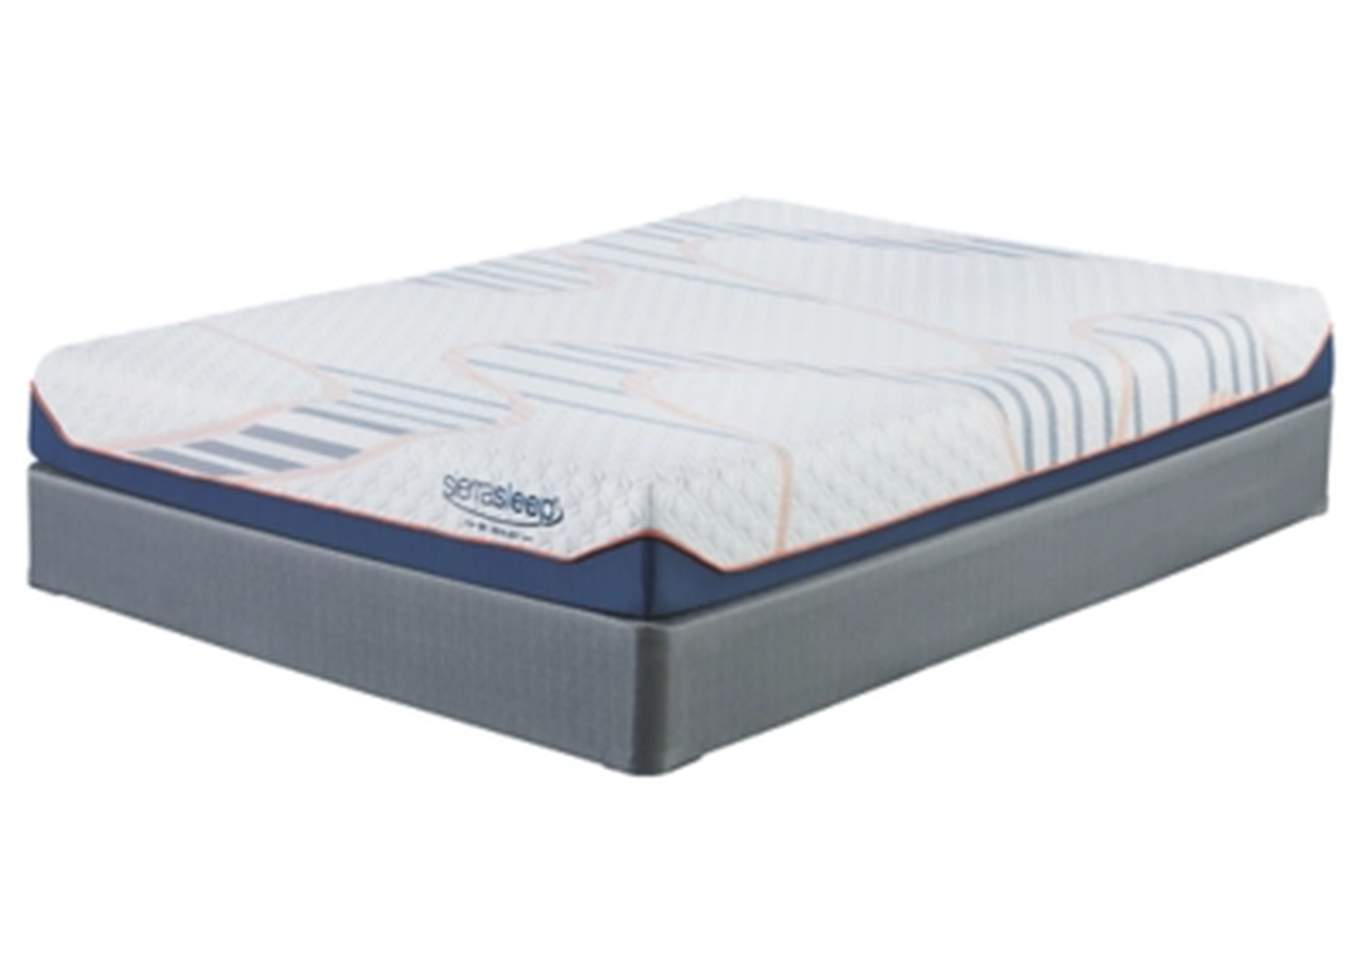 8 Inch MyGel White Queen Mattress w/Foundation,Sierra Sleep by Ashley